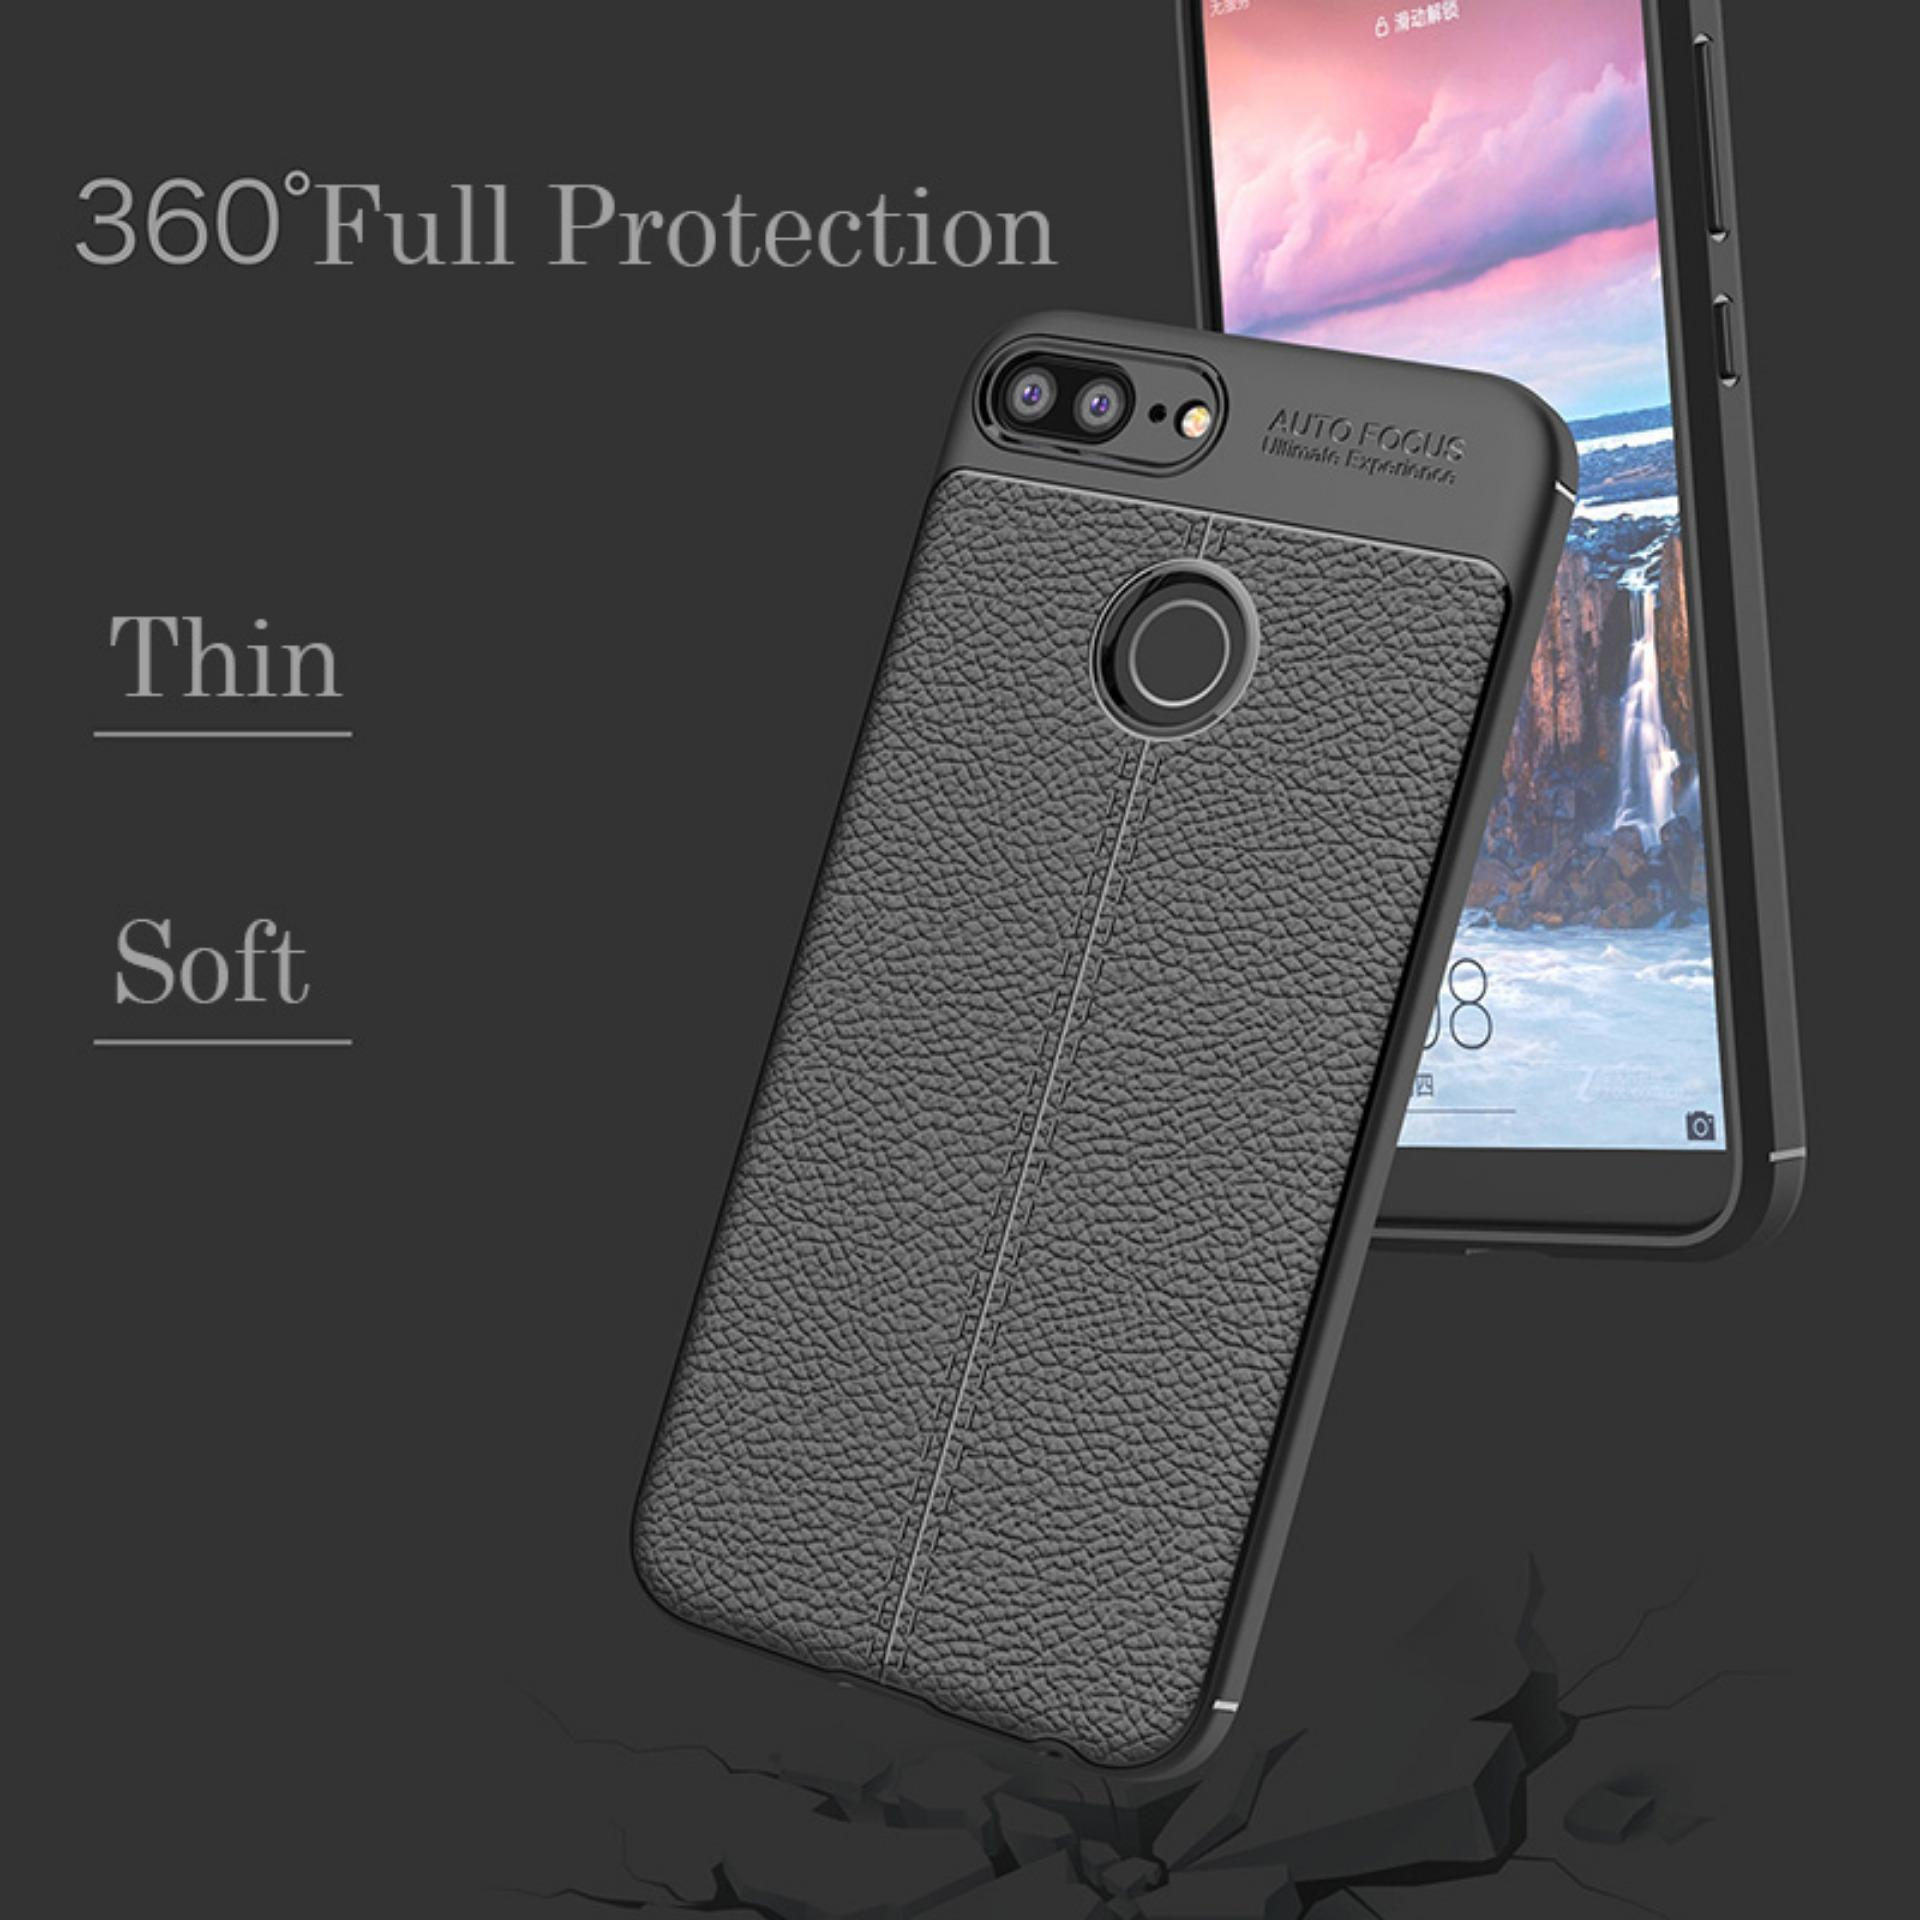 Caselova Ultimate Experience Shockproof Premium Quality Hybrid Case For Huawei Honor 9 Lite - Black ...